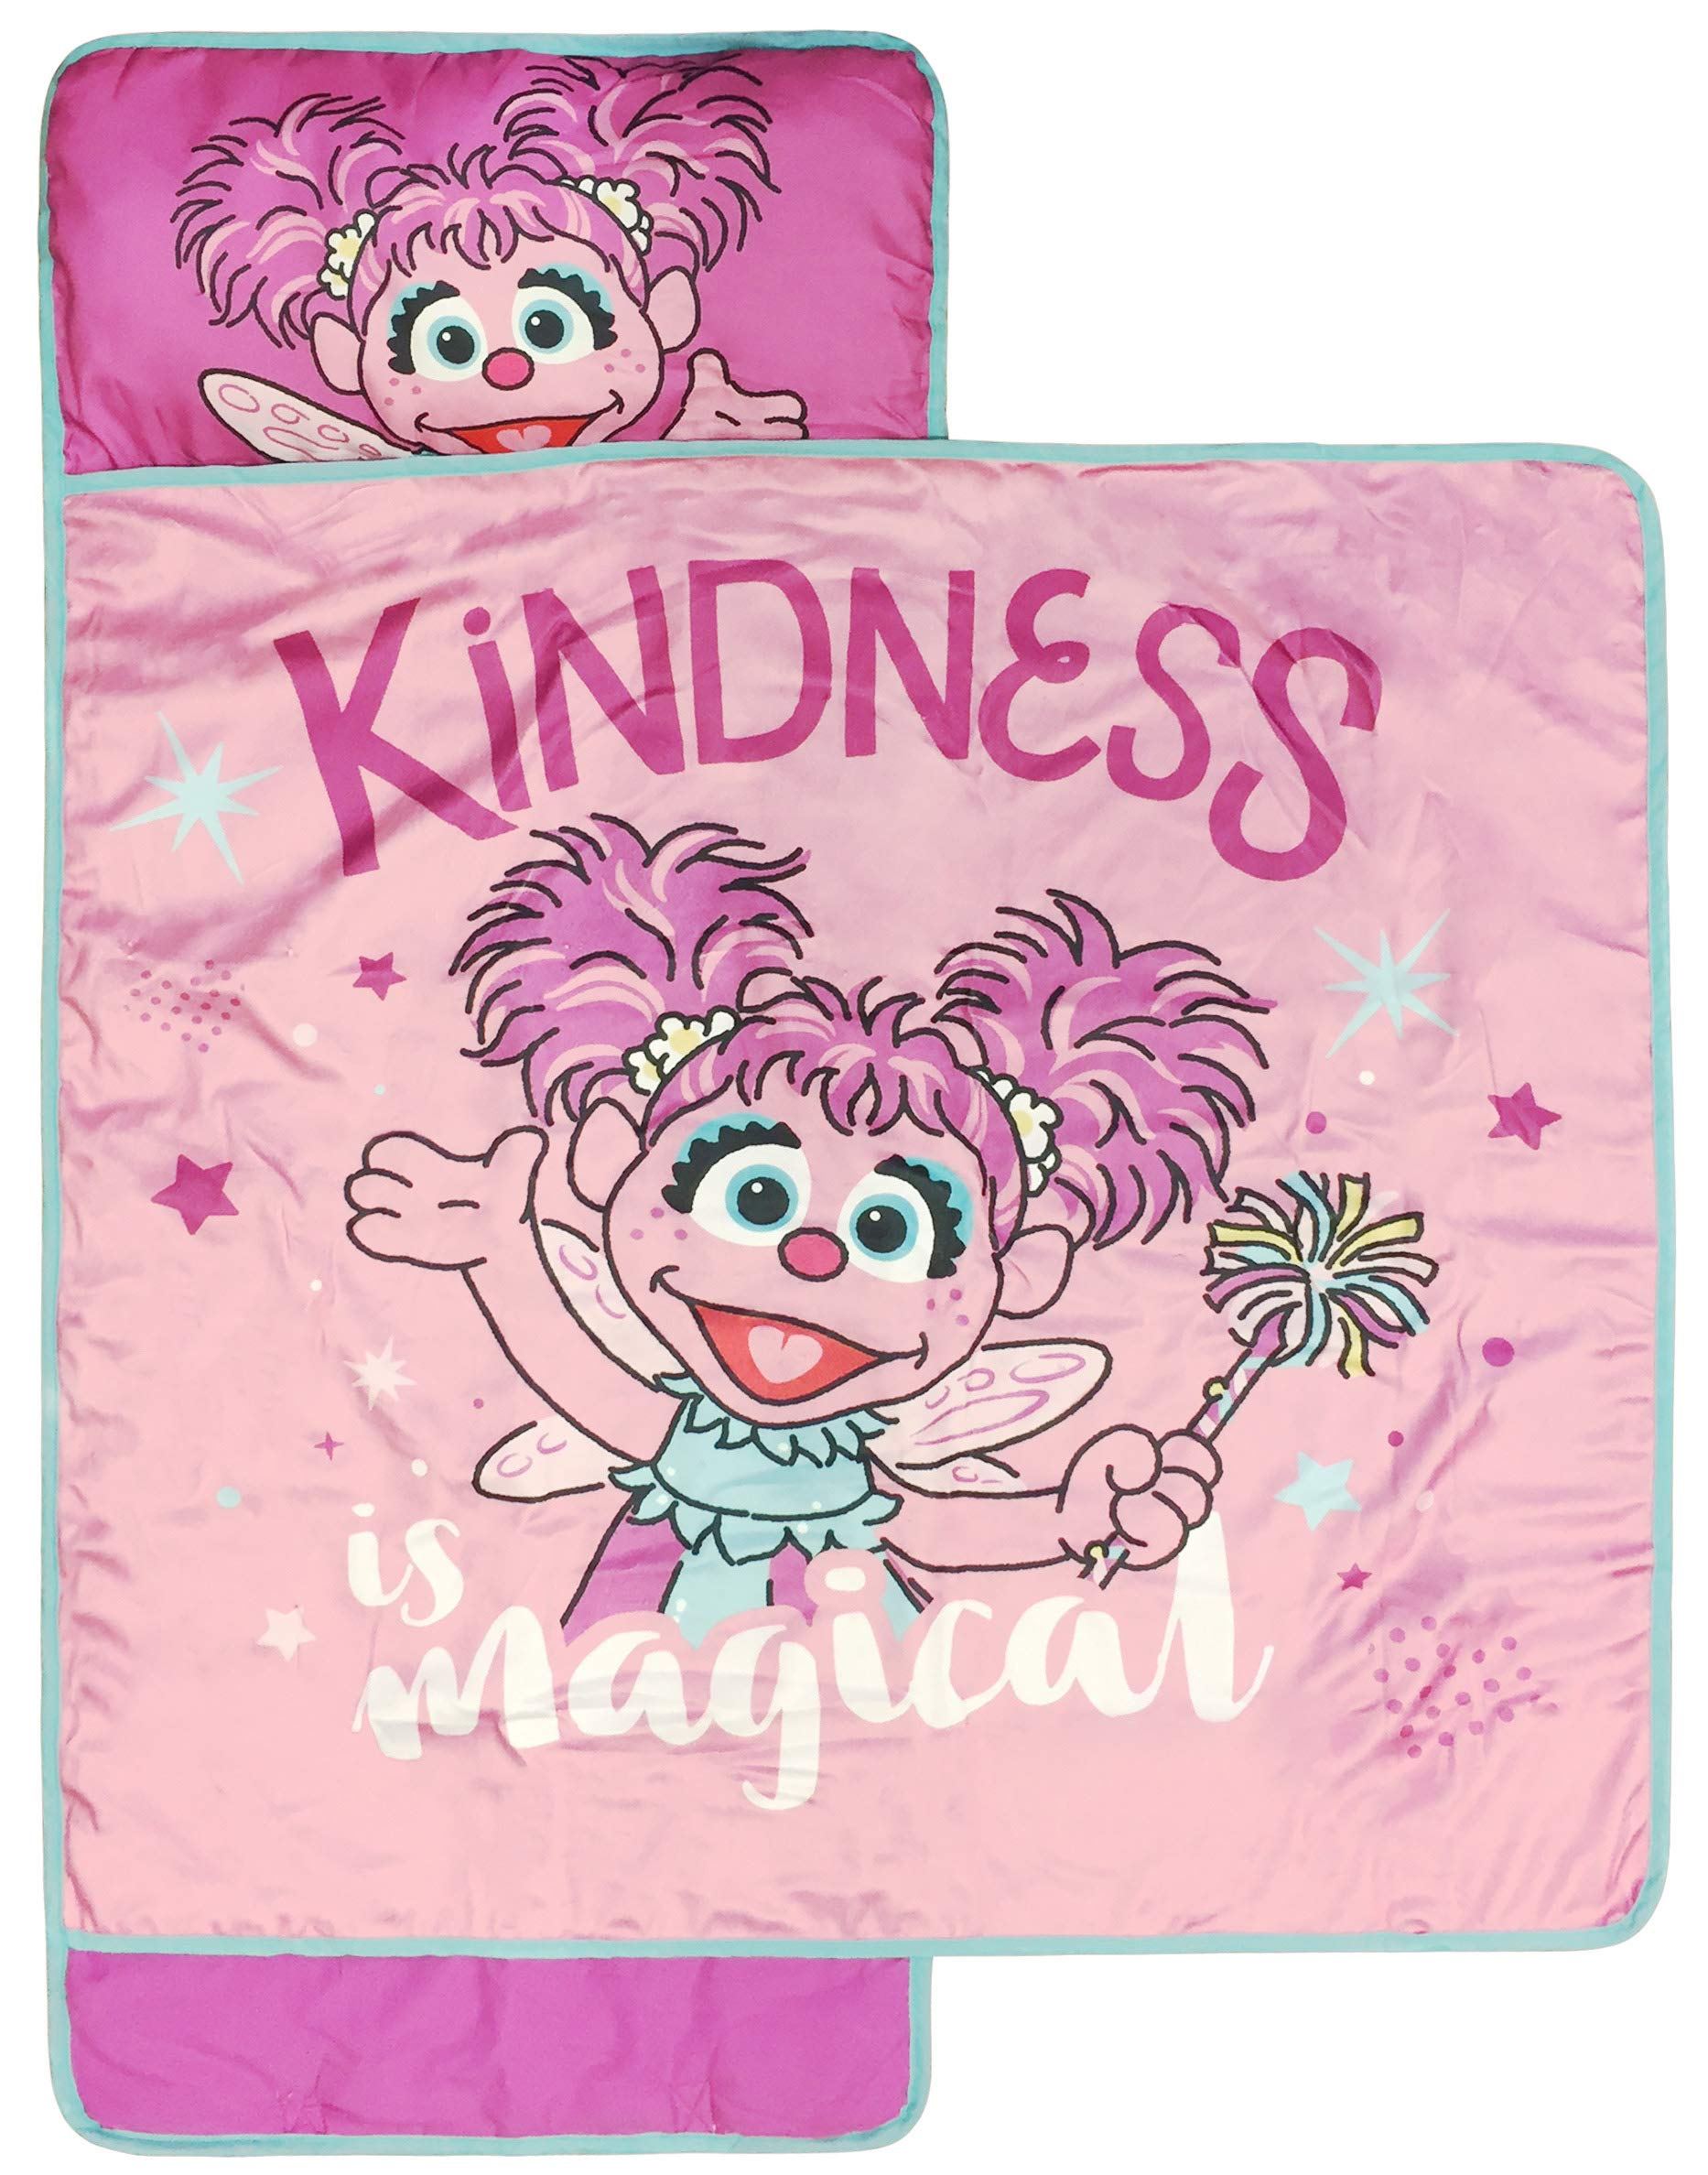 Sesame Street Kindness Is Magic Nap Mat - Built-in Pillow and Blanket featuring Abby Cadabby - Super Soft Microfiber Kids'/Toddler/Children's Bedding, Ages 3-7 (Official Sesame Street Product) by Jay Franco